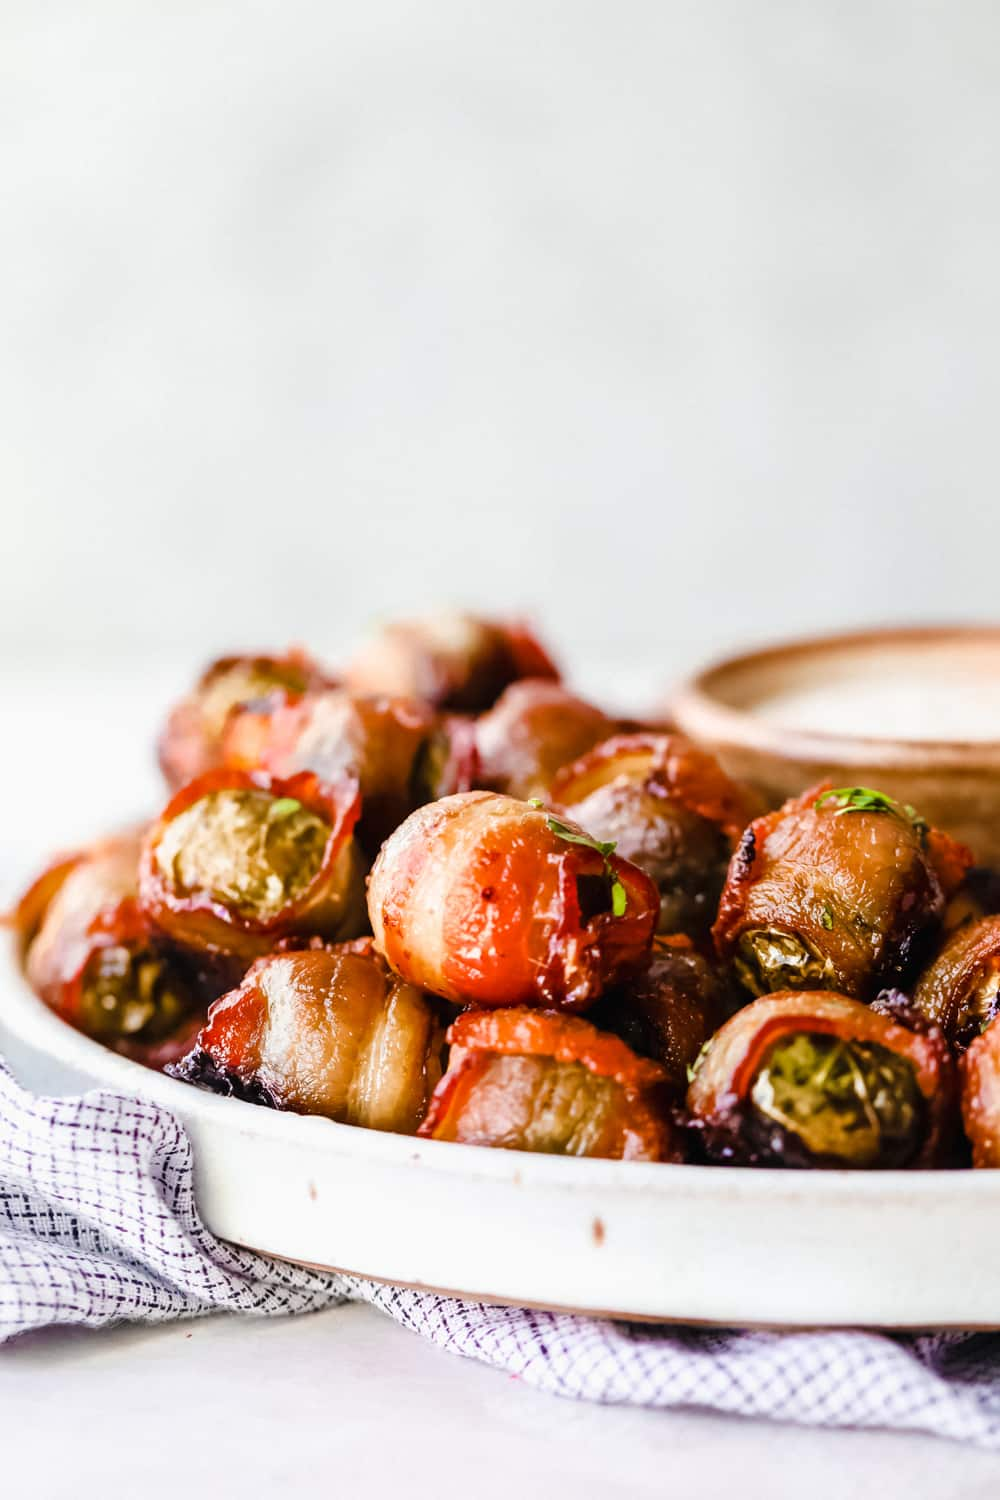 Awesome Bacon Wrapped Brussels Sprouts